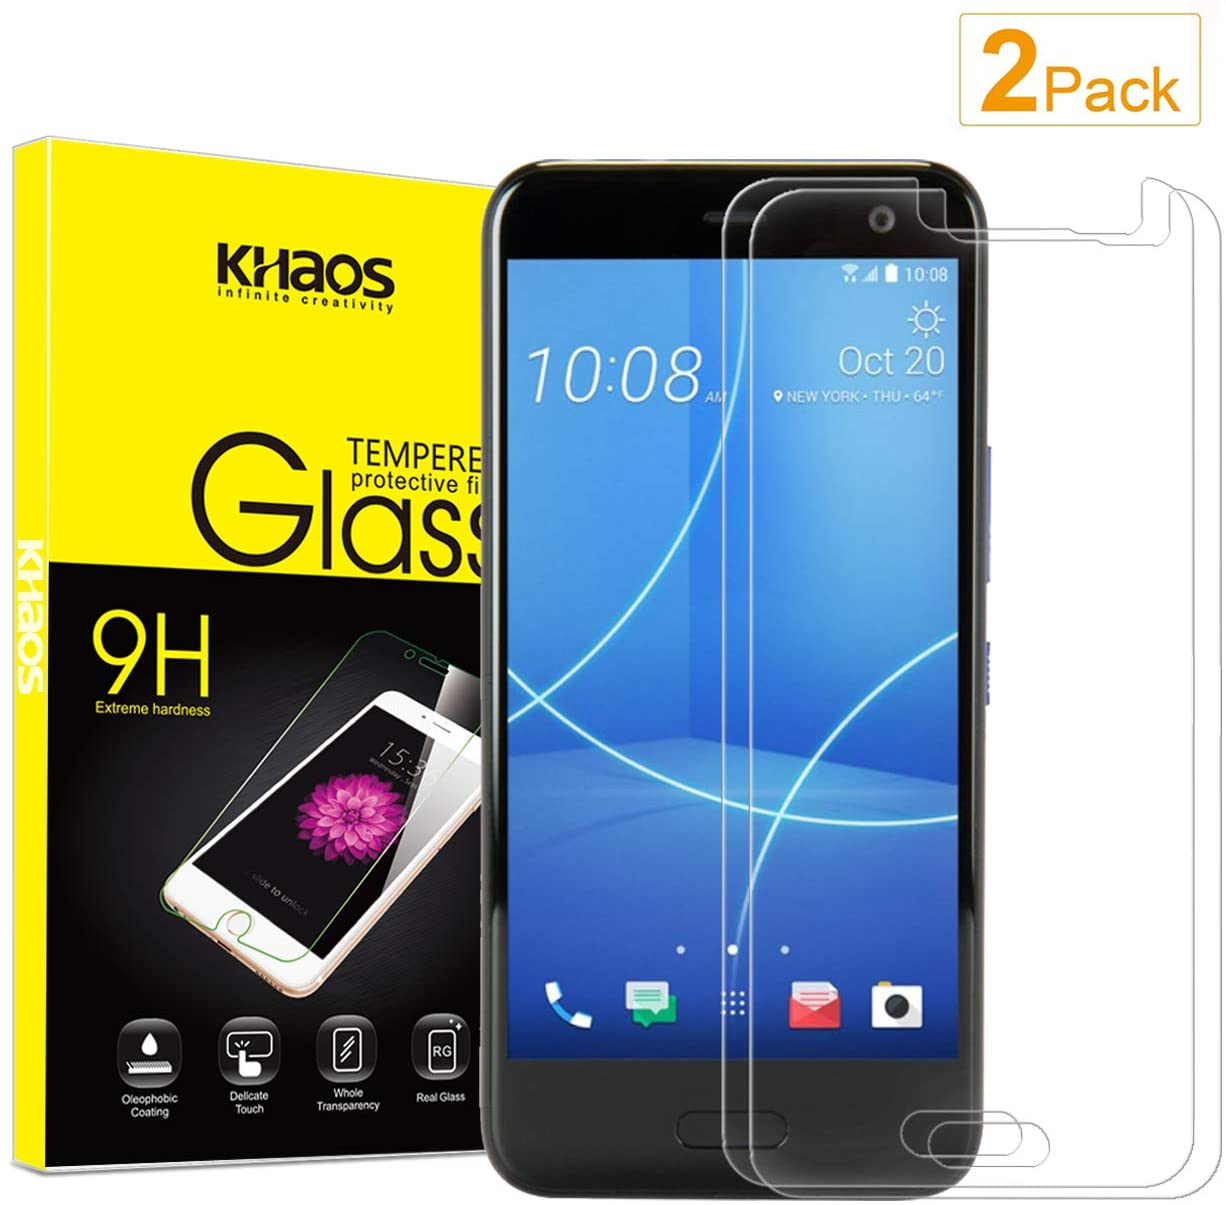 2Pack Screen Protector for HTC U11 Life, KHAOS Anti-Scratch Tempered Glass for HTC U11 Life